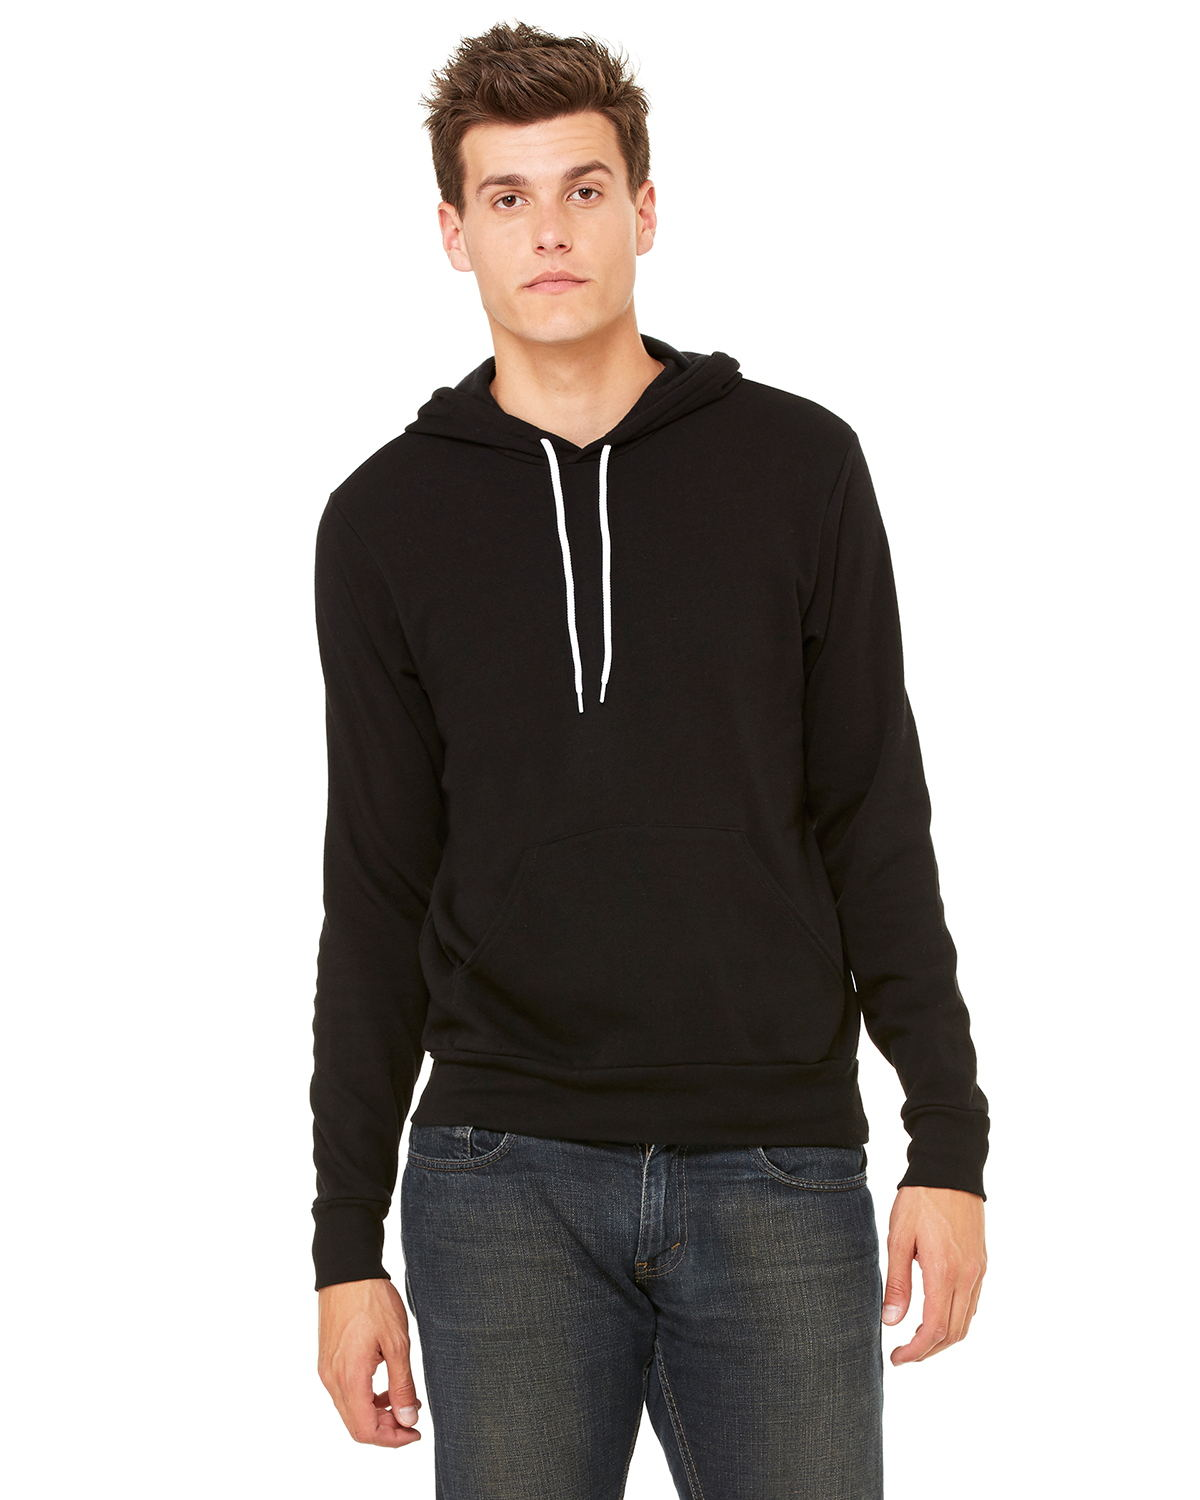 Bella + Canvas 3719 - Unisex Sponge Fleece Pullover ...